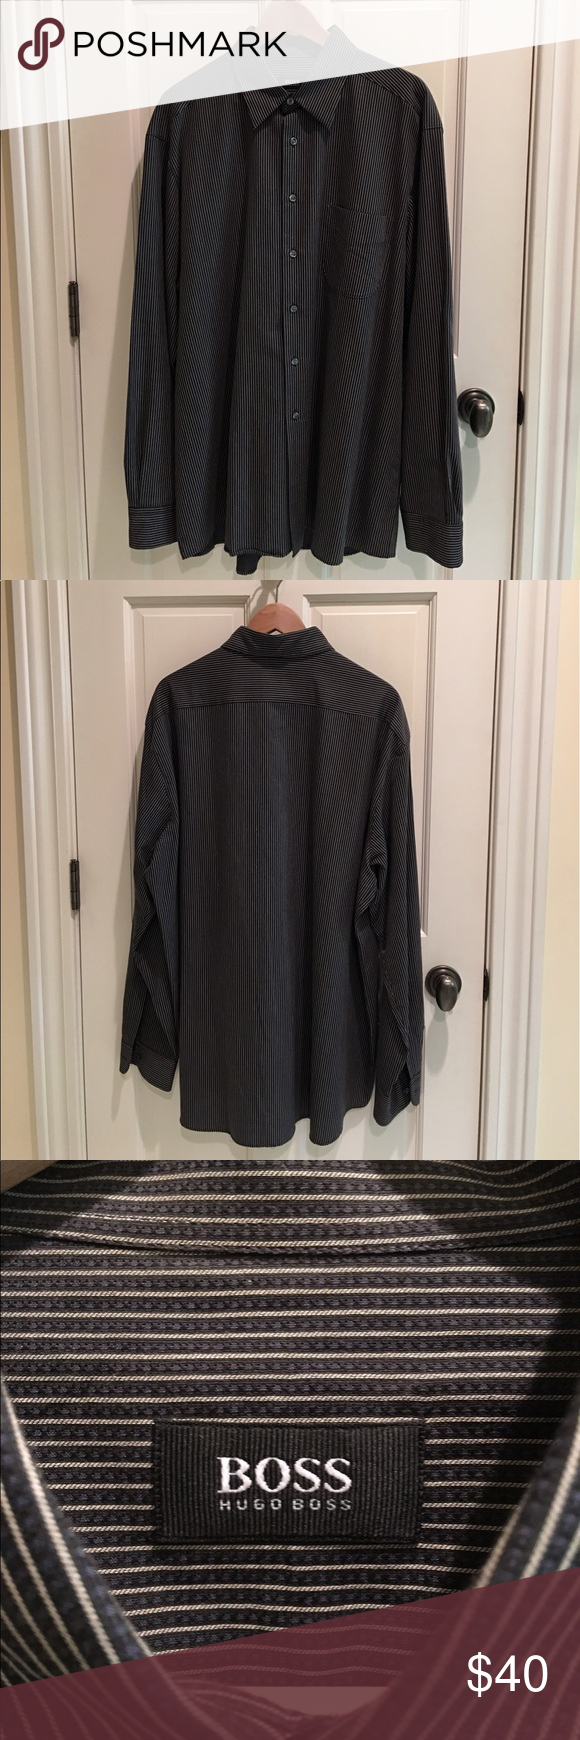 Hugo Boss casual shirt Worn once, brand new condition, 100% cotton, beautiful fabric light black and white stripes Hugo Boss Shirts Casual Button Down Shirts